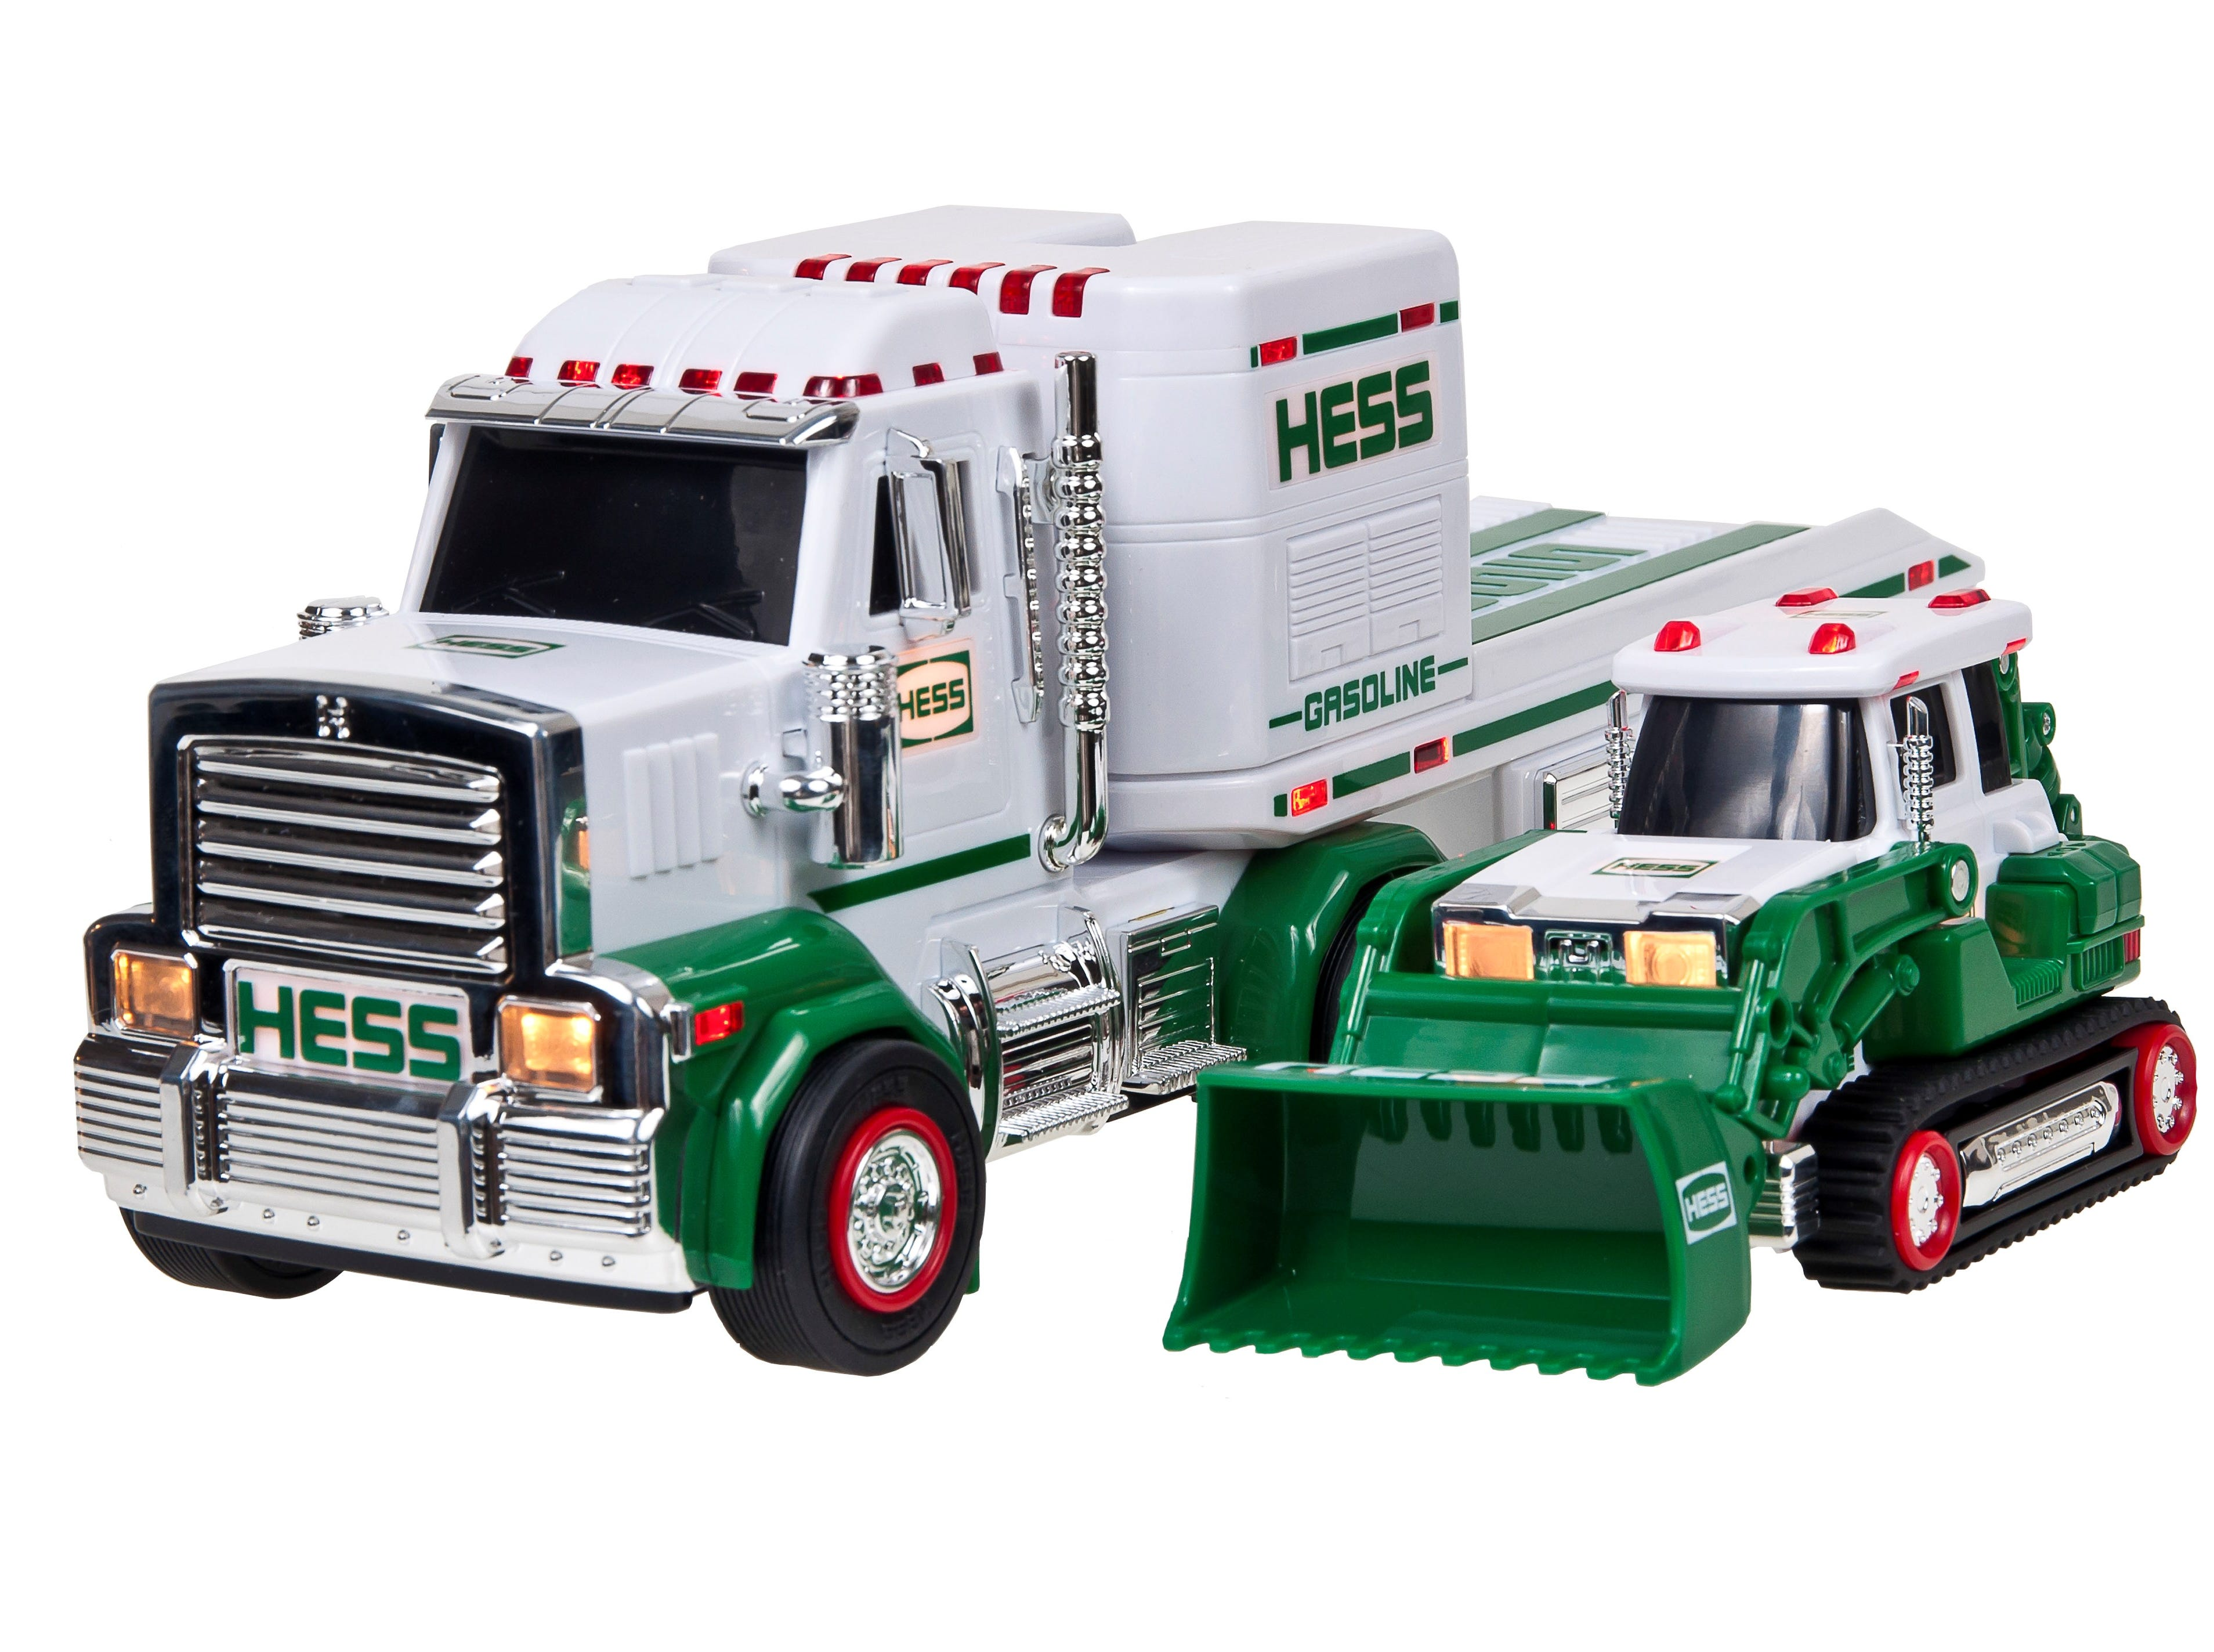 The 2013 Hess toy truck.